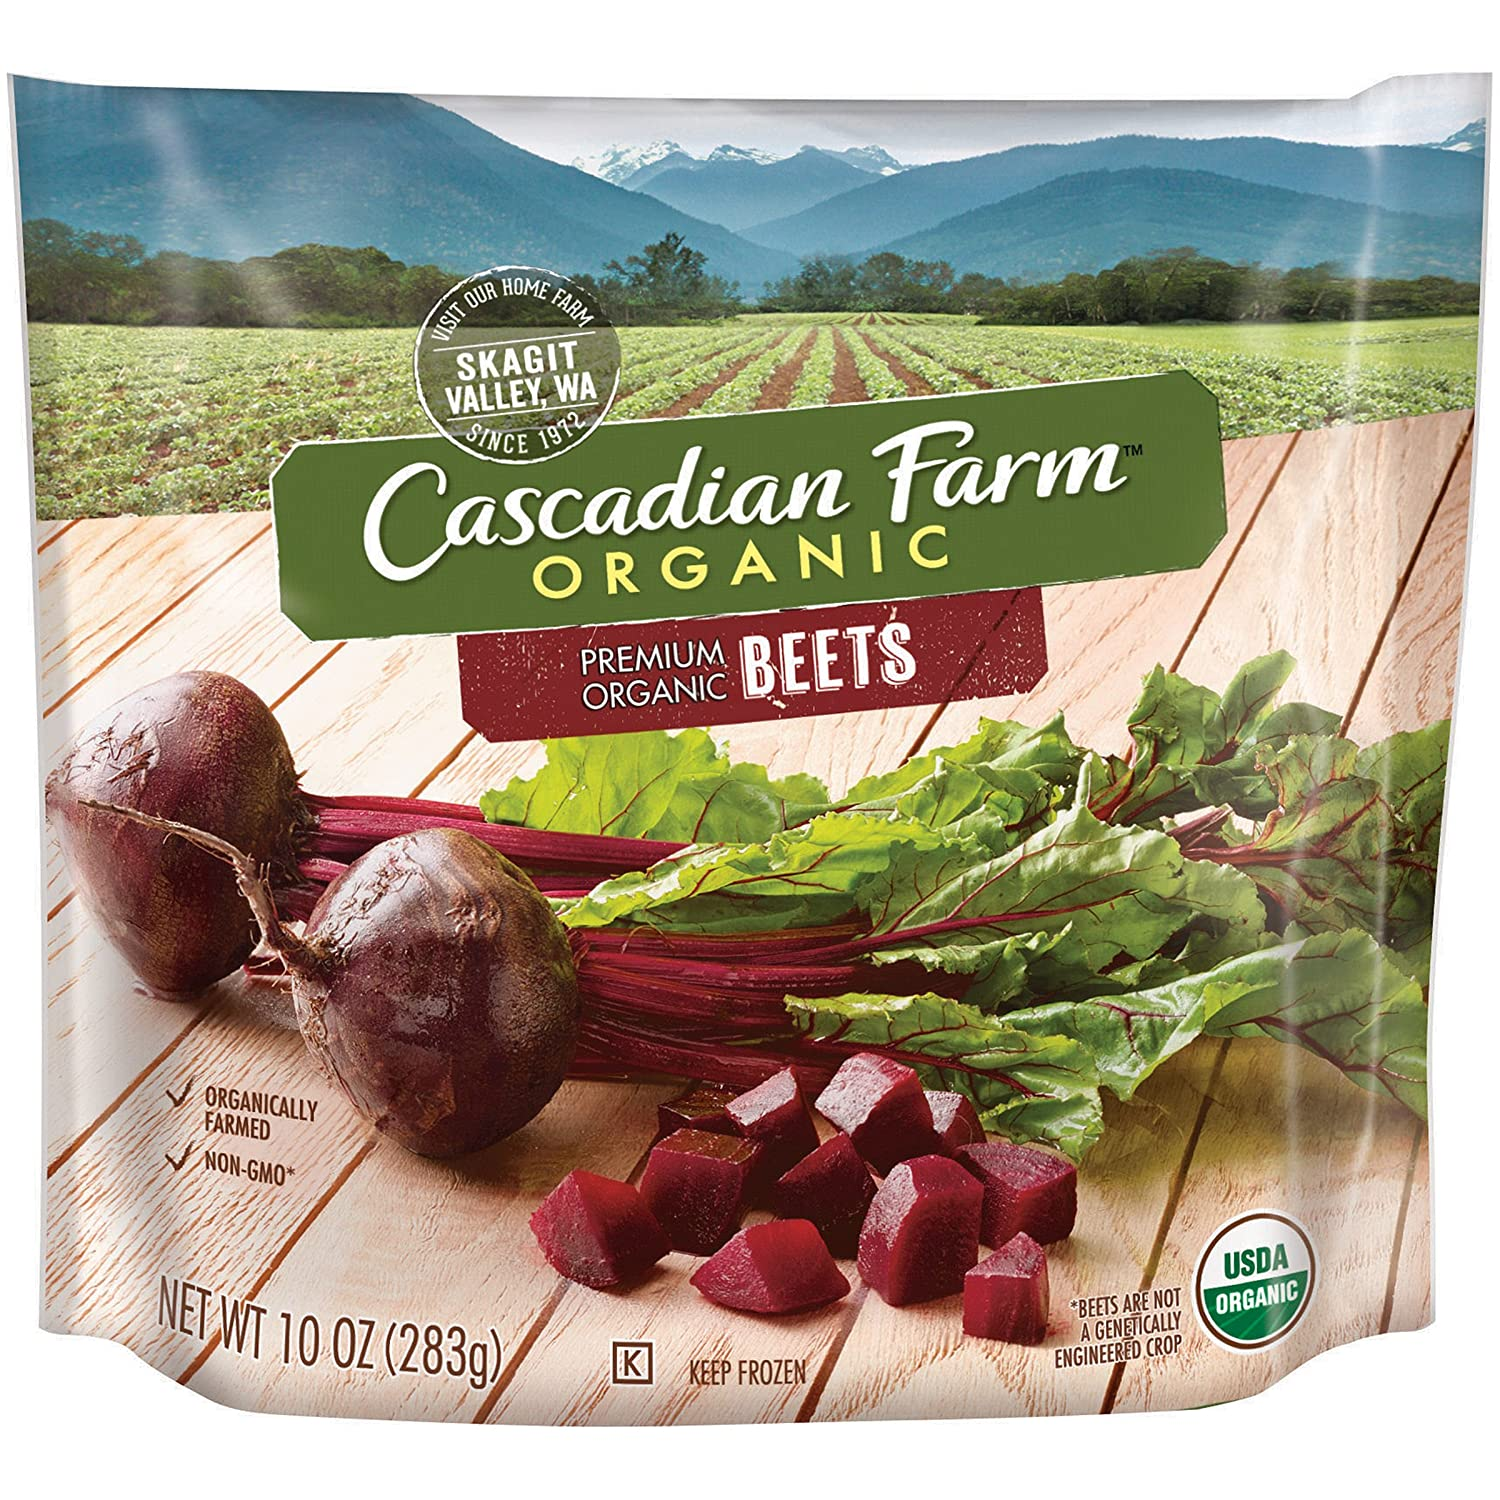 Cascadian Farm Organic Beets, 10oz Bag (Frozen), Organically Farmed Frozen Vegetables, Non-GMO